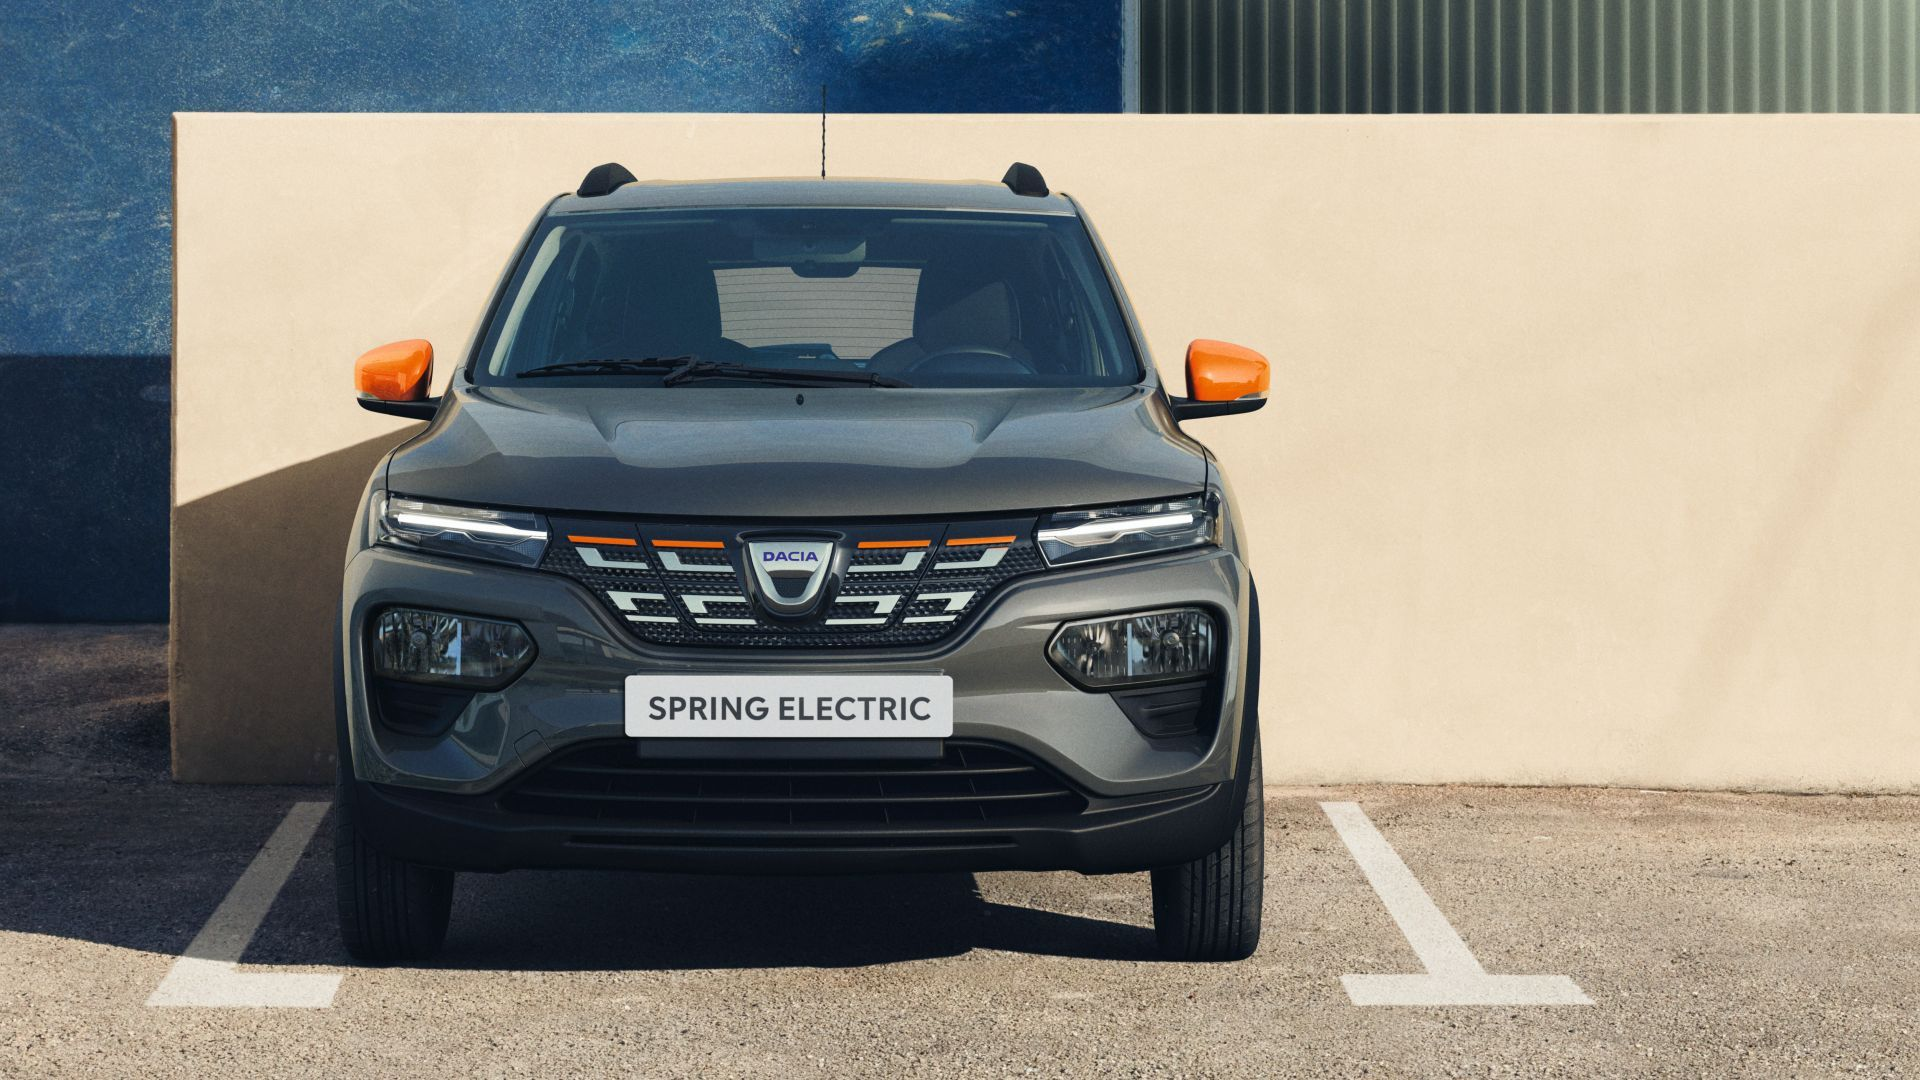 Dacia-Spring-Electric-7